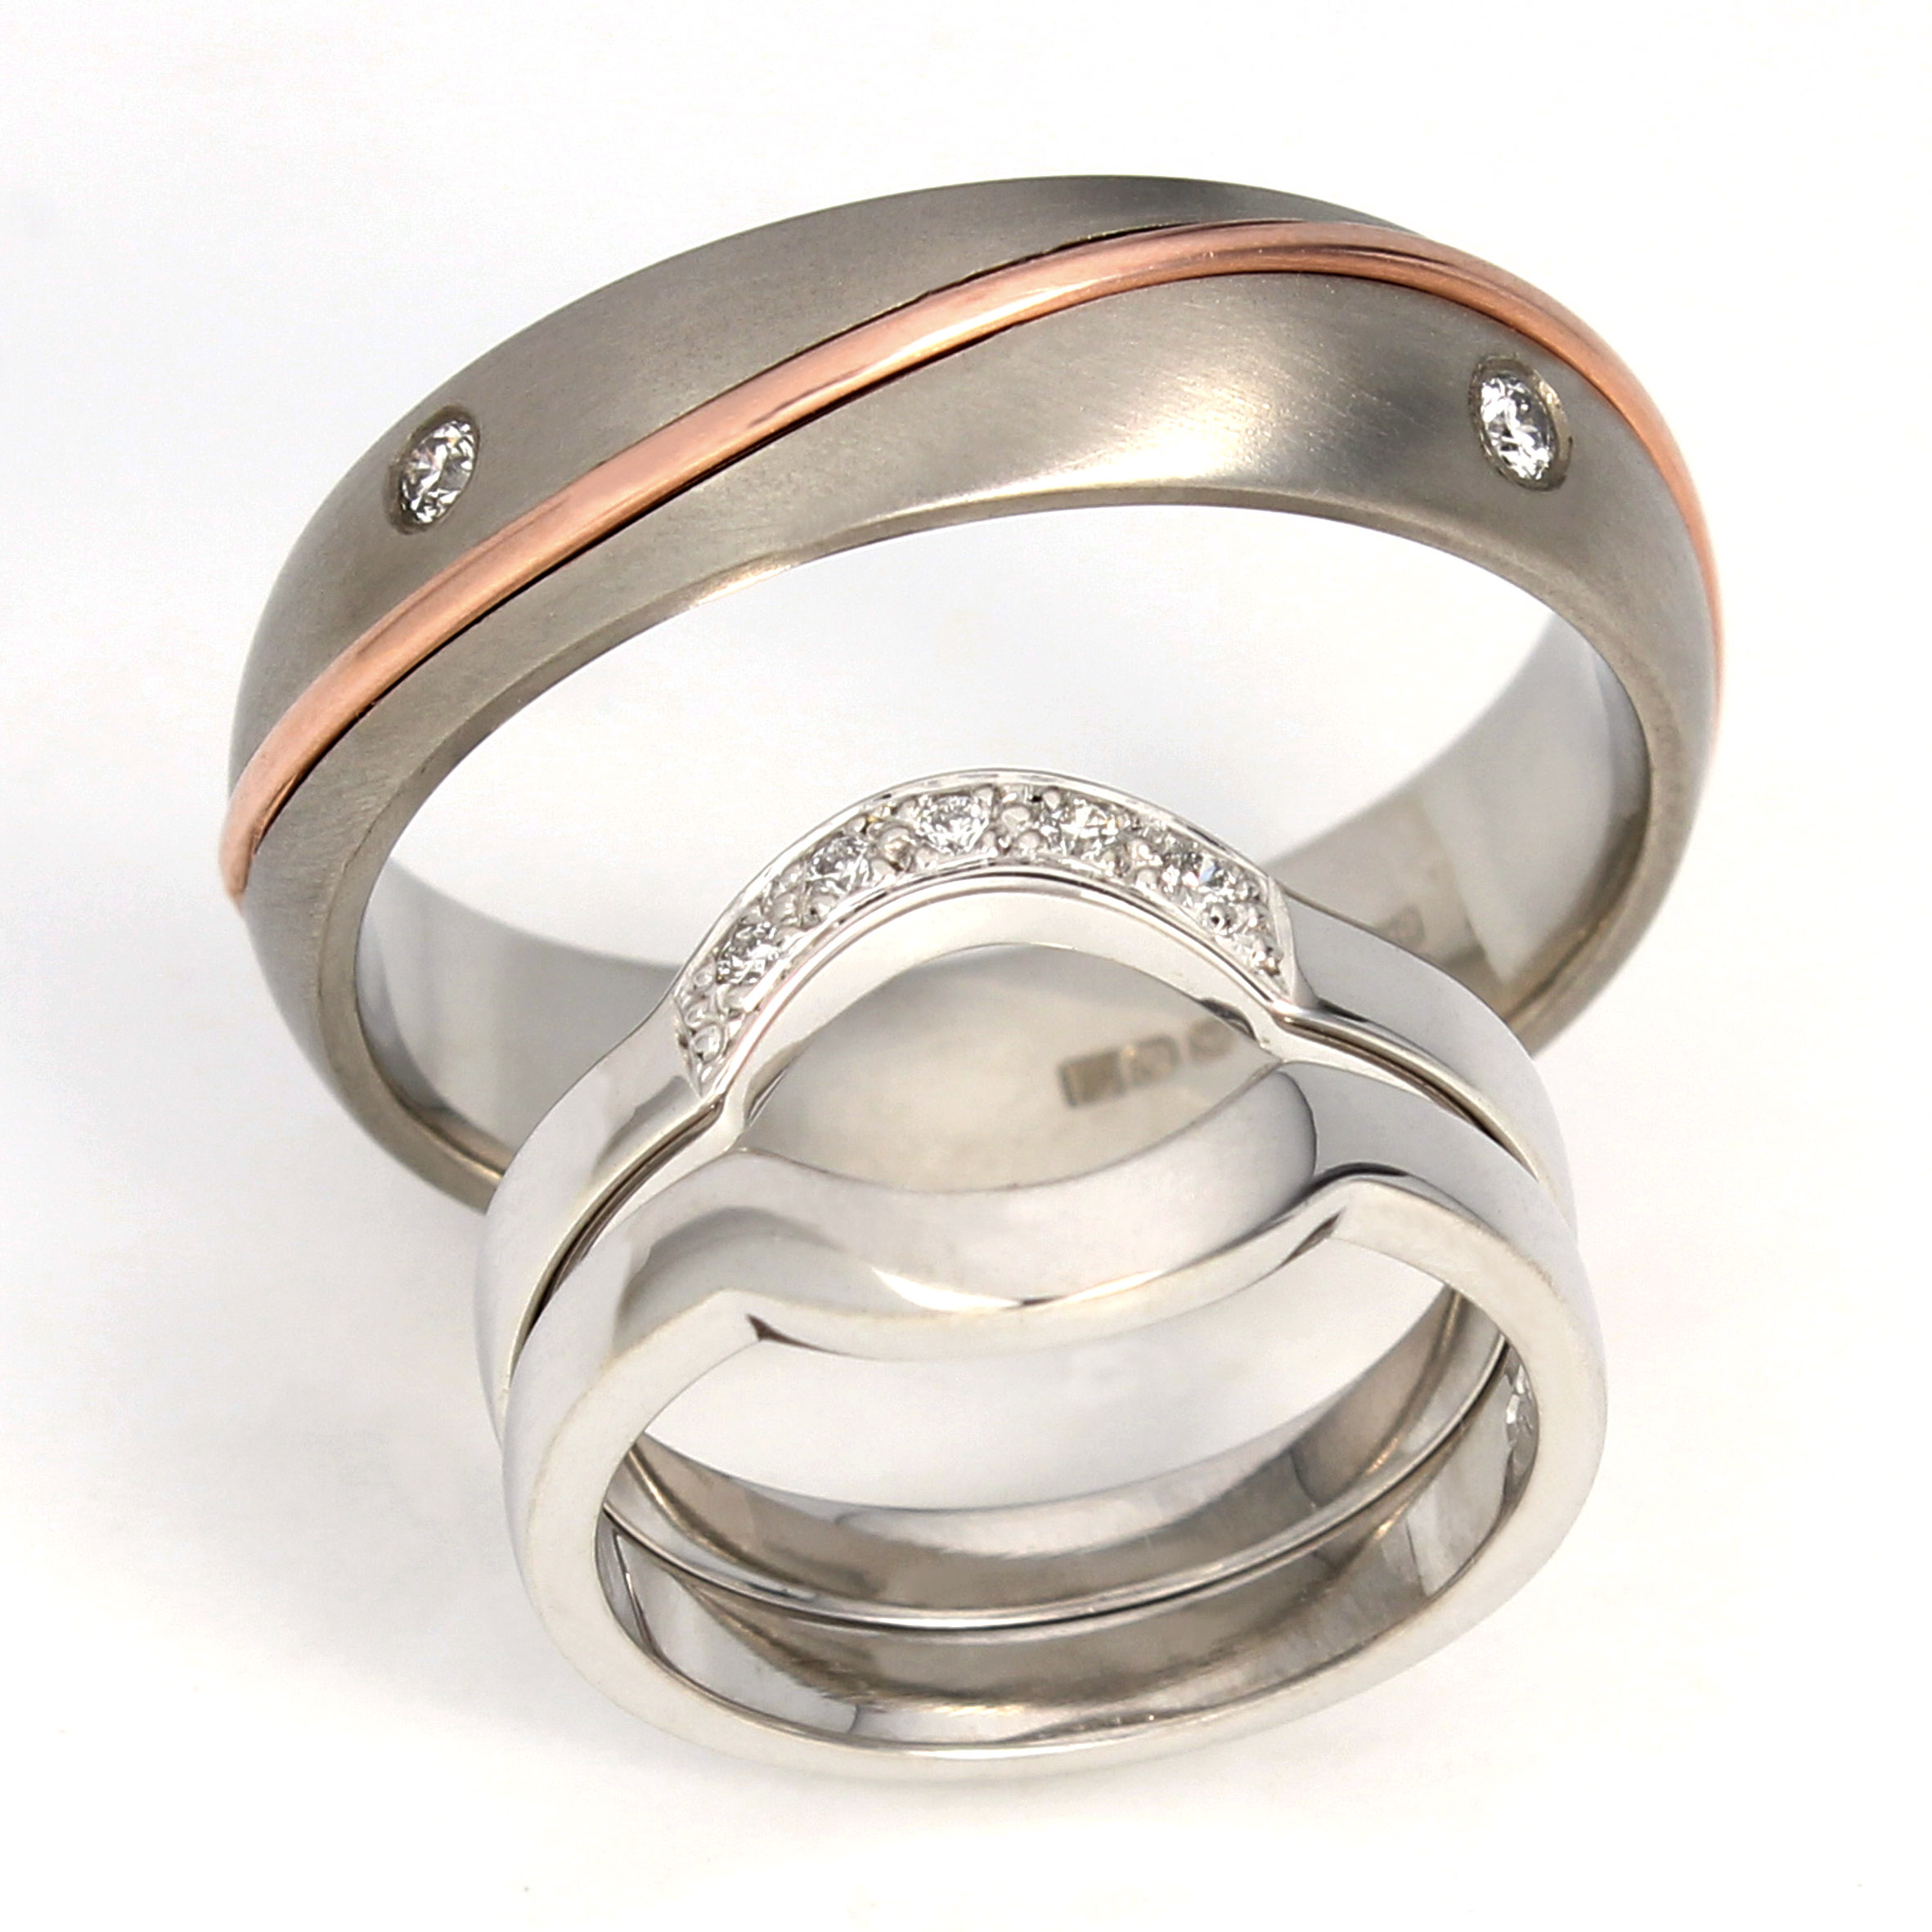 Shaped wedding and eternity ring and rose gold inlay